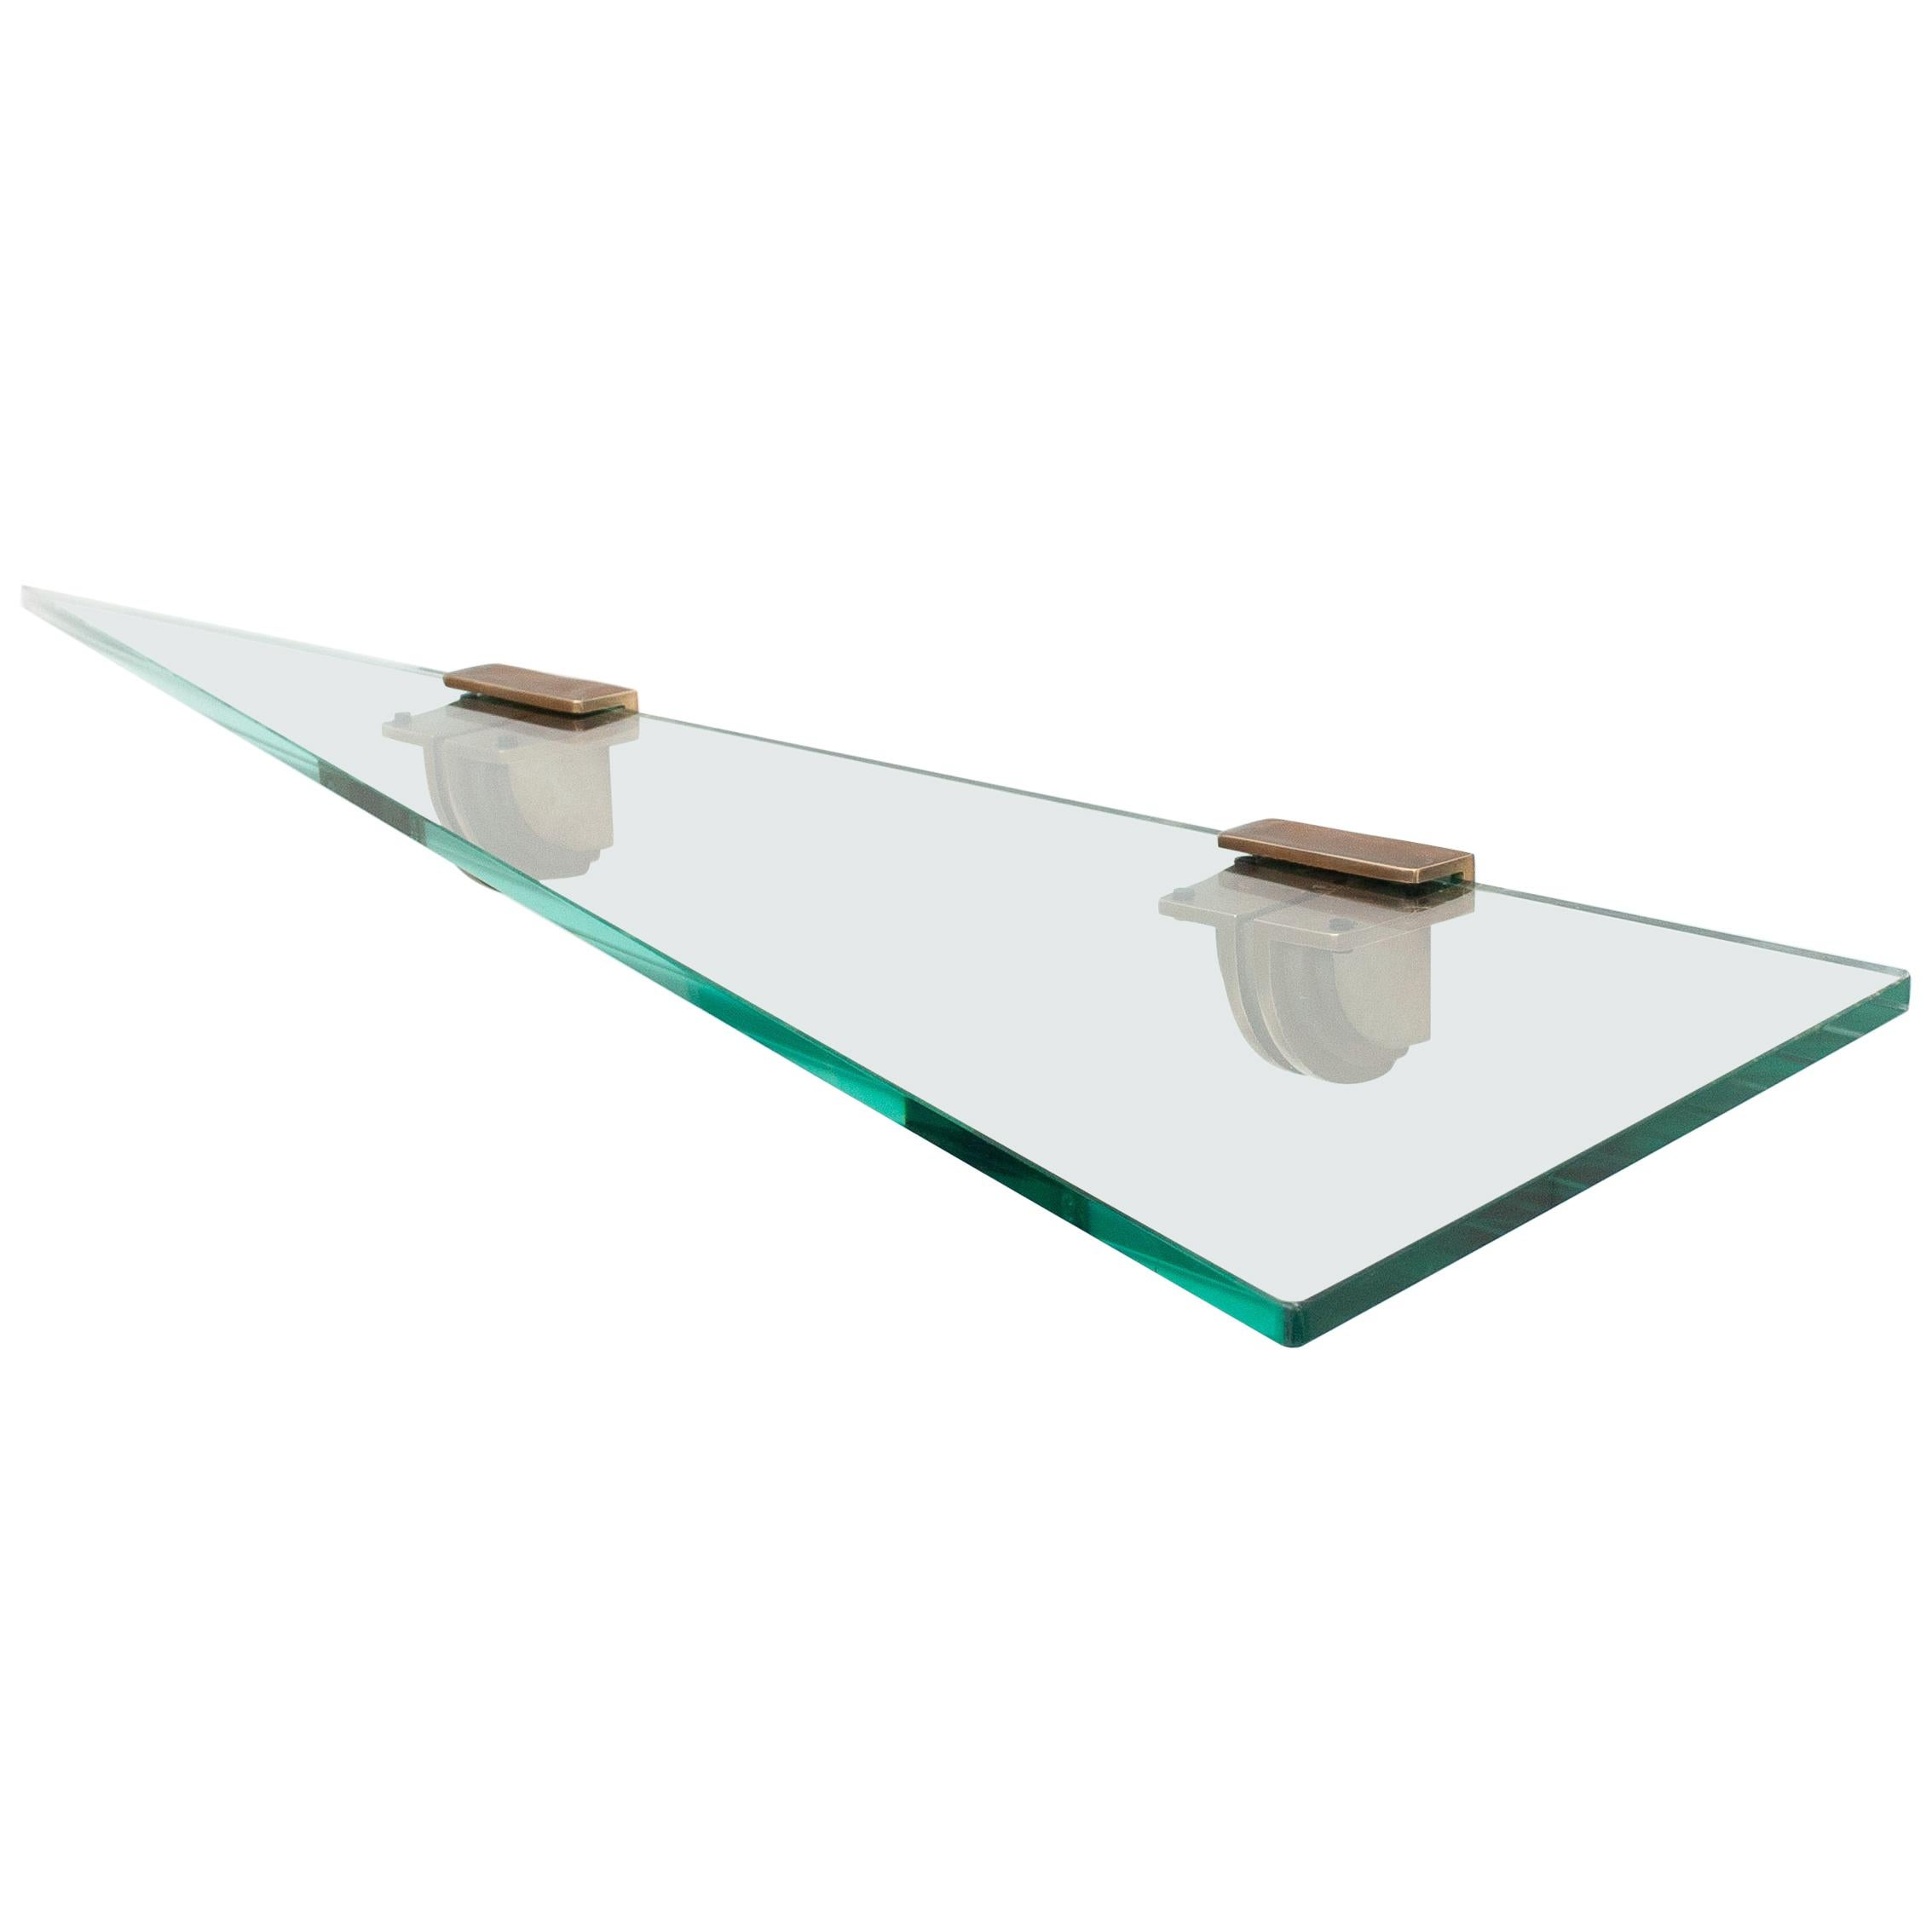 Peter Ghyczy Glass Wall Shelve, 1970